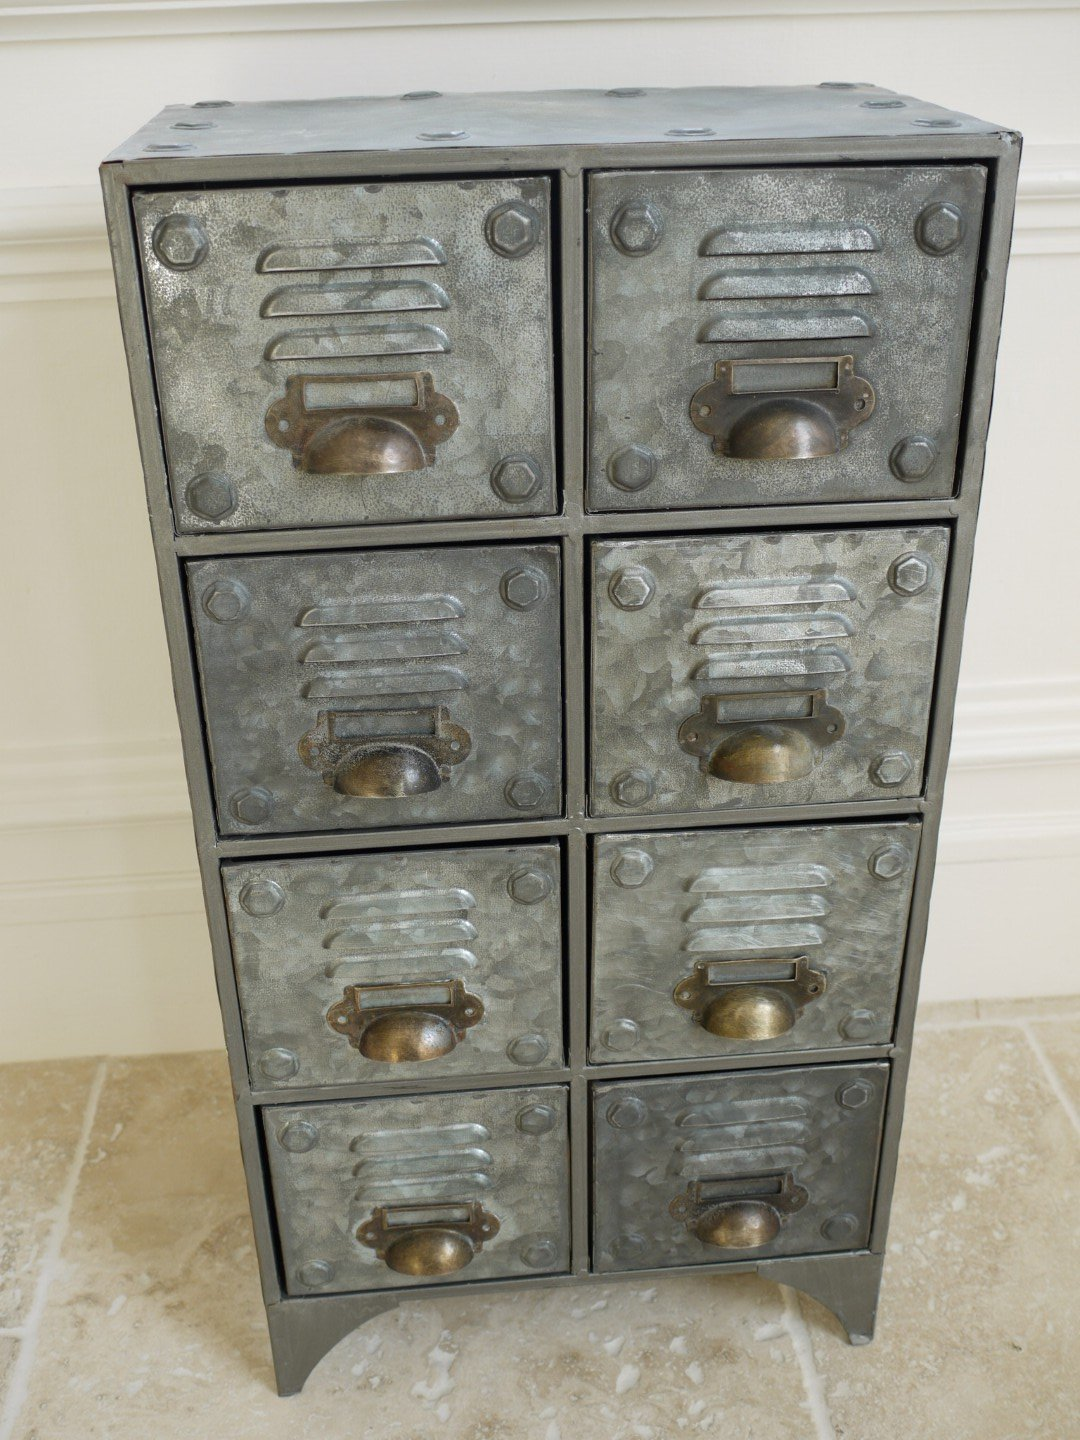 Industrial Style Aged Metal Drawer Chest Cabinet: Amazon.co.uk: Kitchen U0026  Home Amazing Pictures